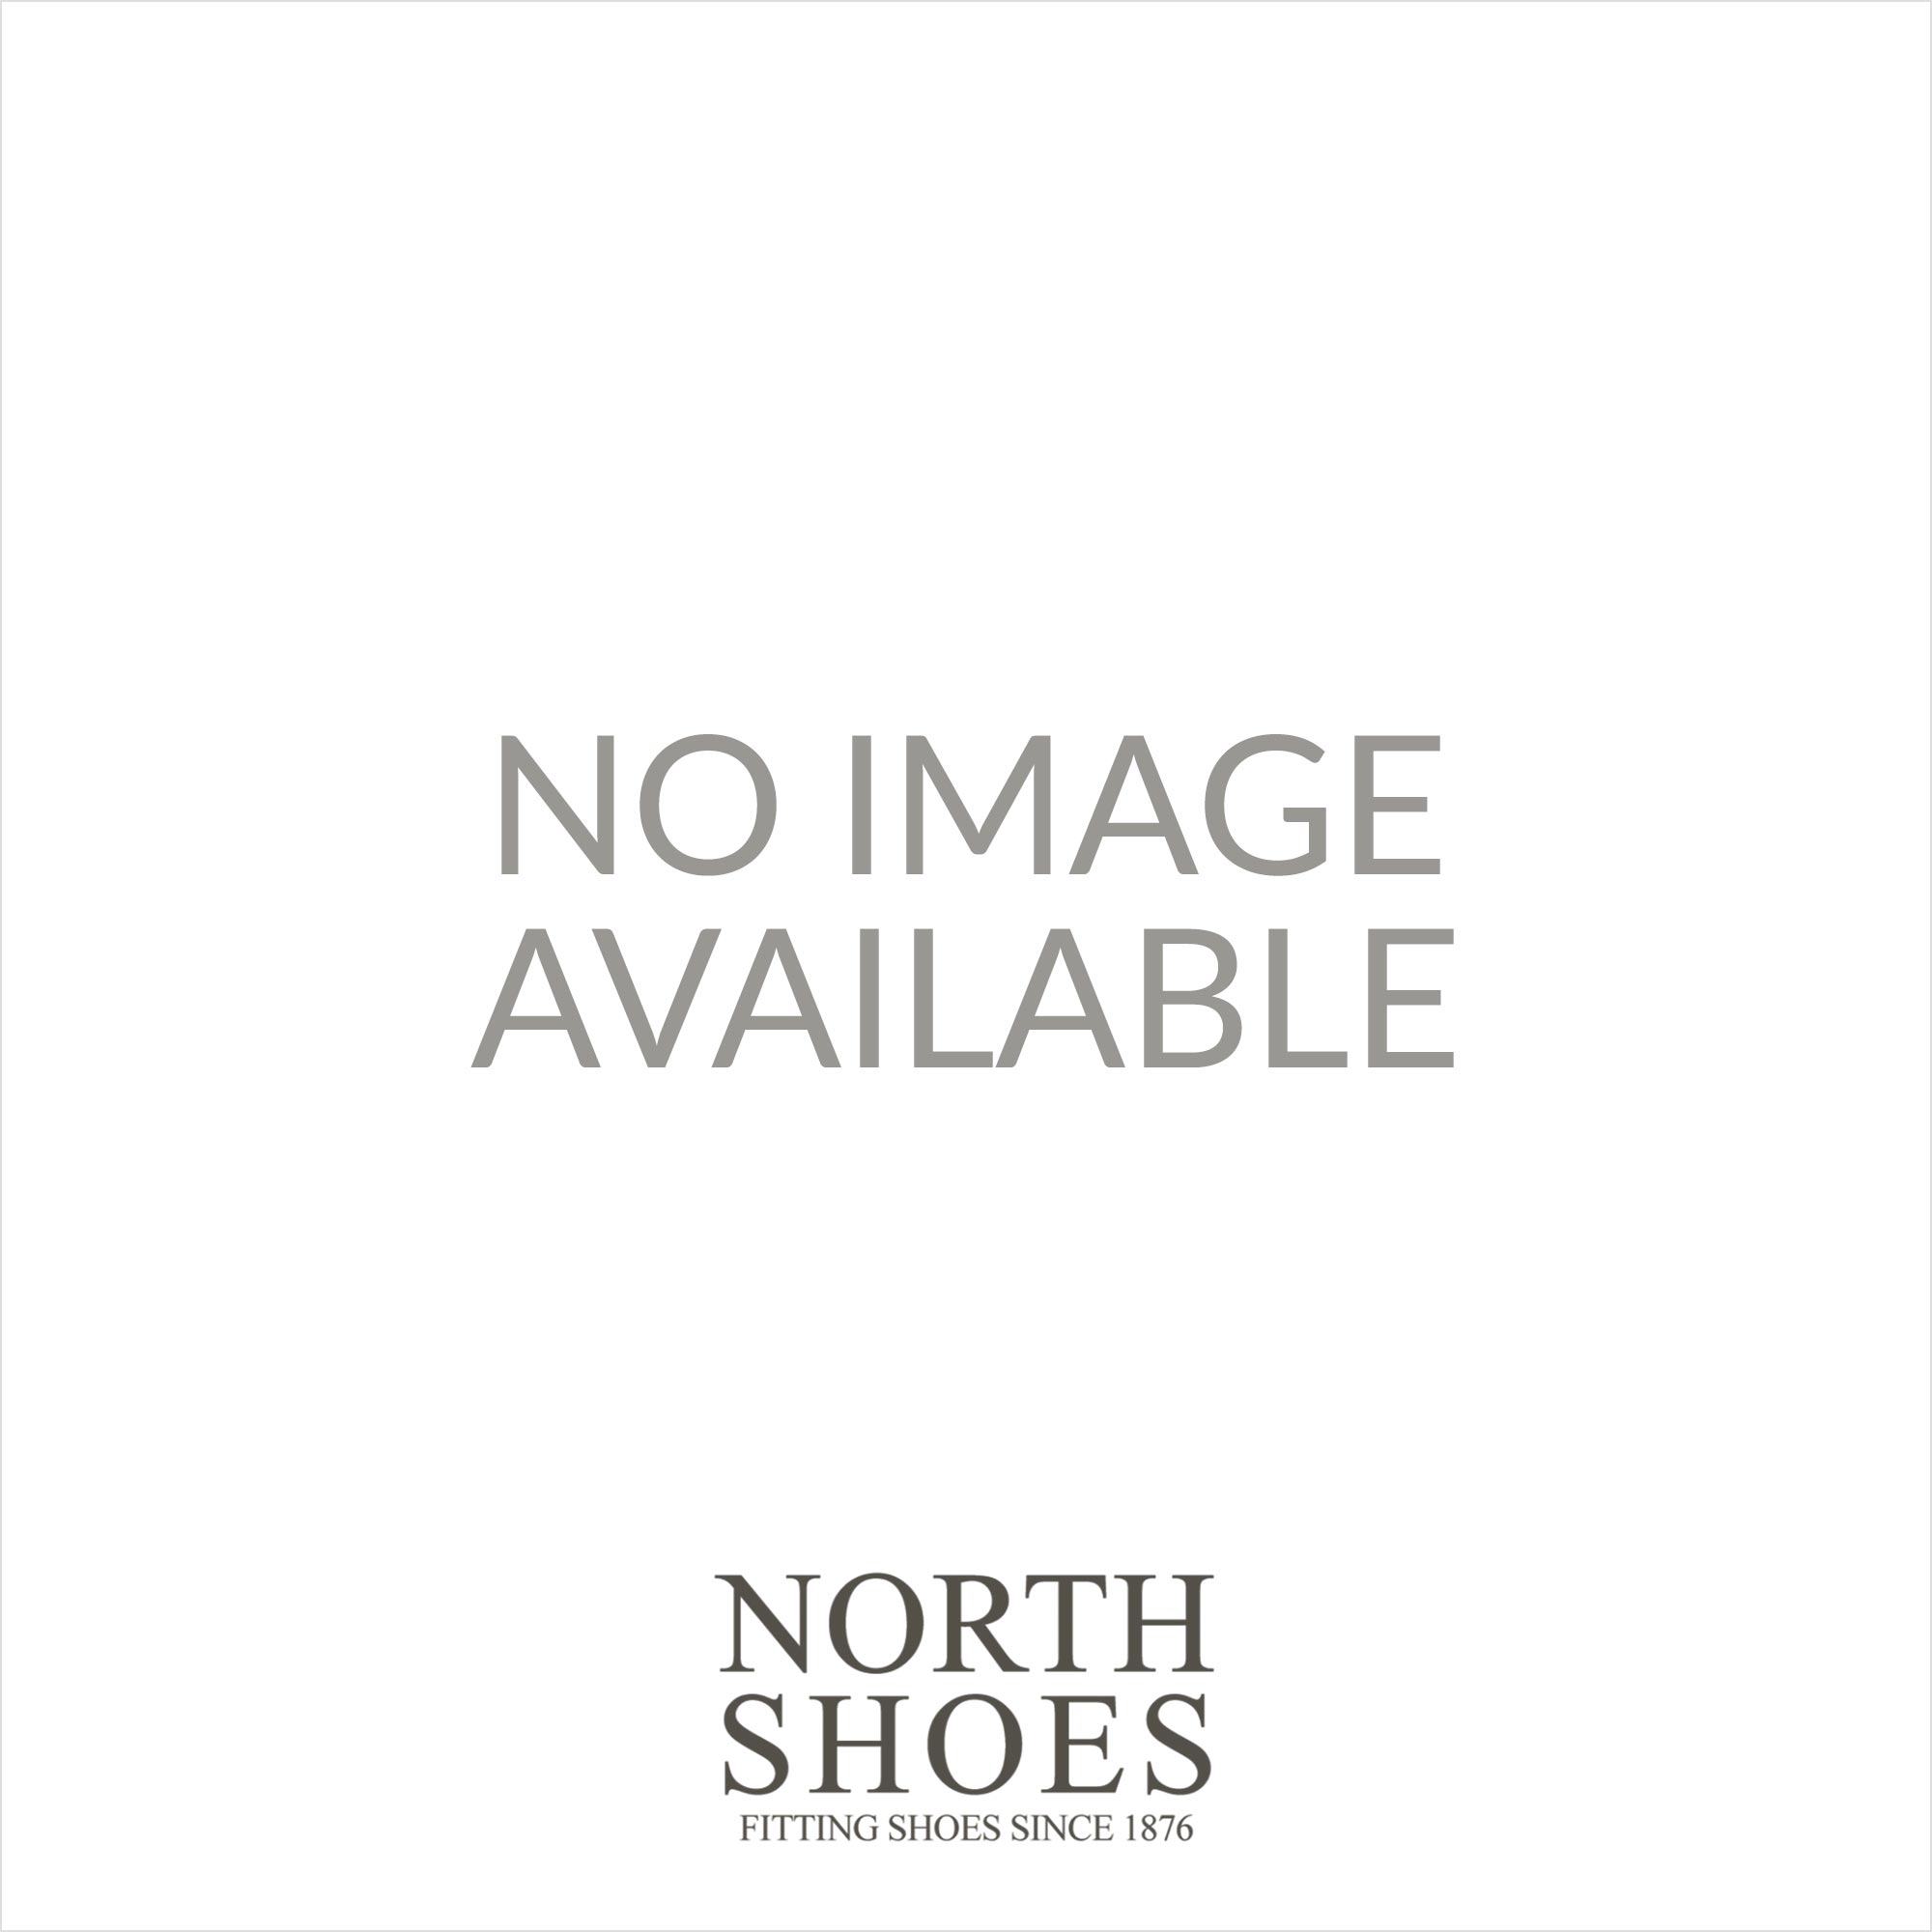 248726c6f4a3 Clarks Orinoco Club Burgundy Leather Womens Chelsea Boot - UK 4½ - Clarks  from North Shoes UK